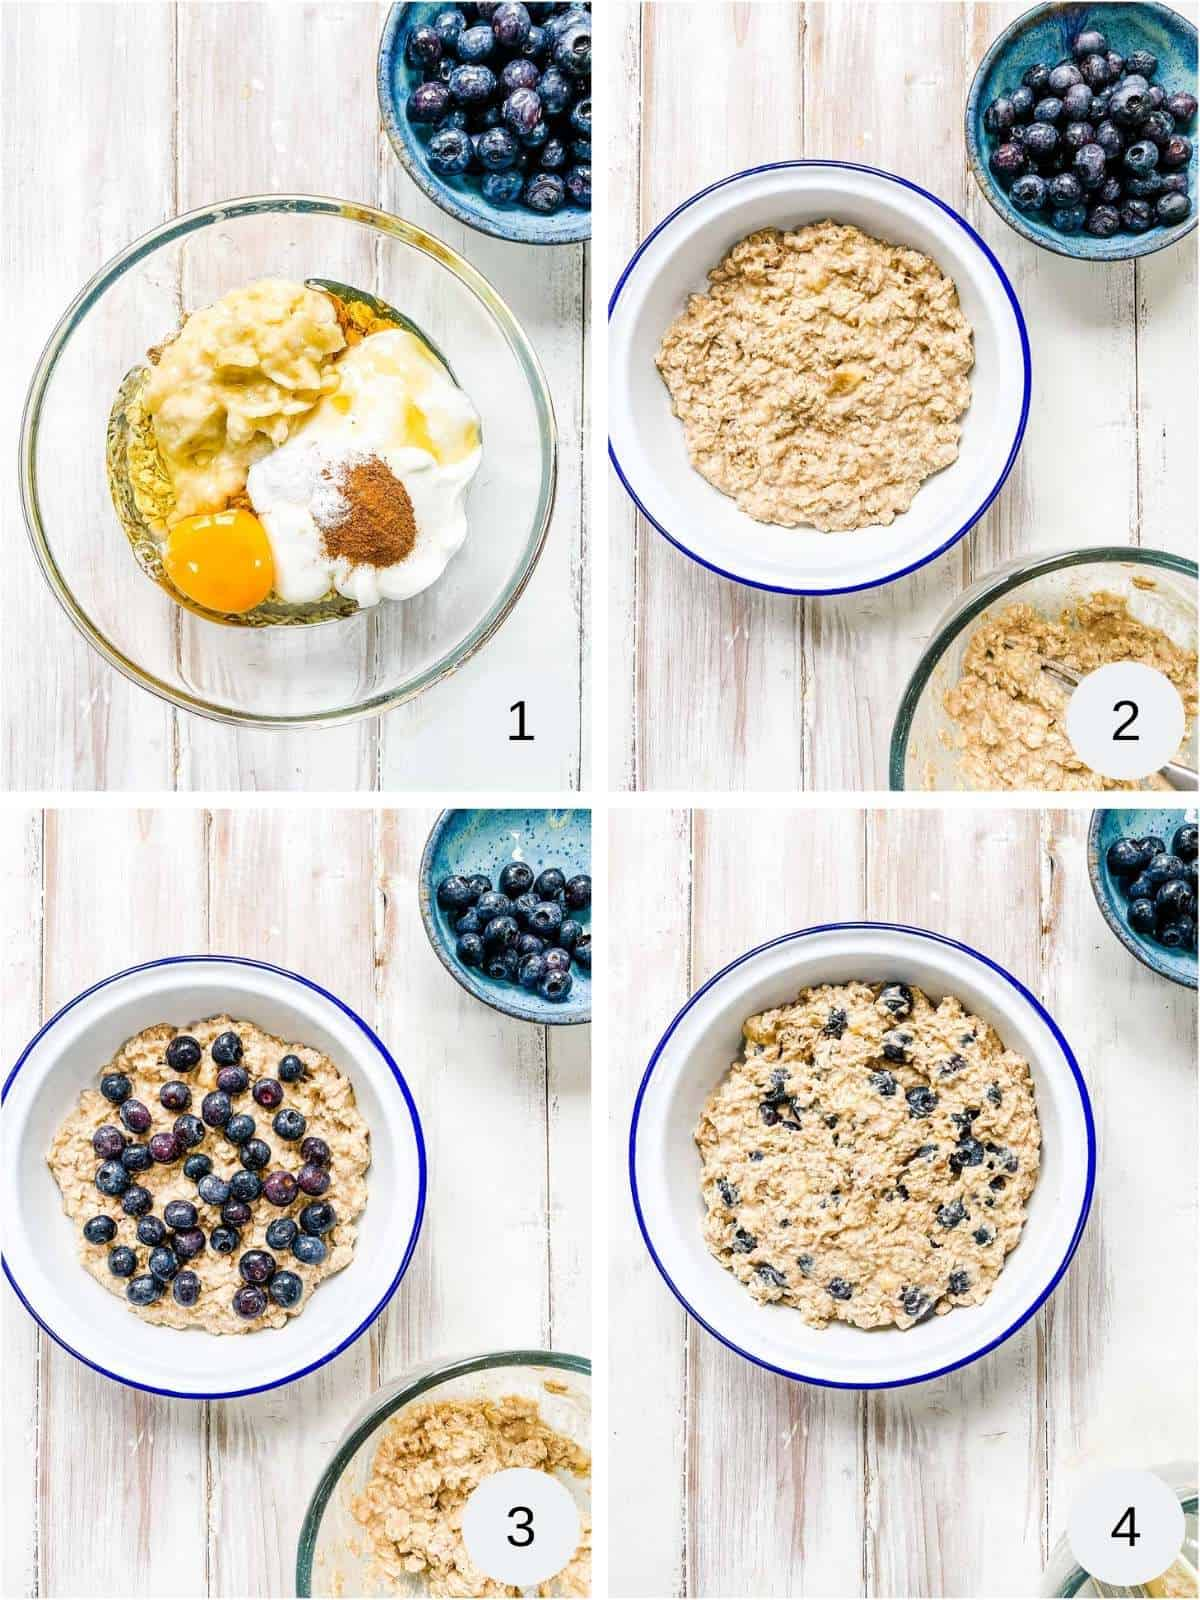 4 photos depicting the process of making baked oatmeal.